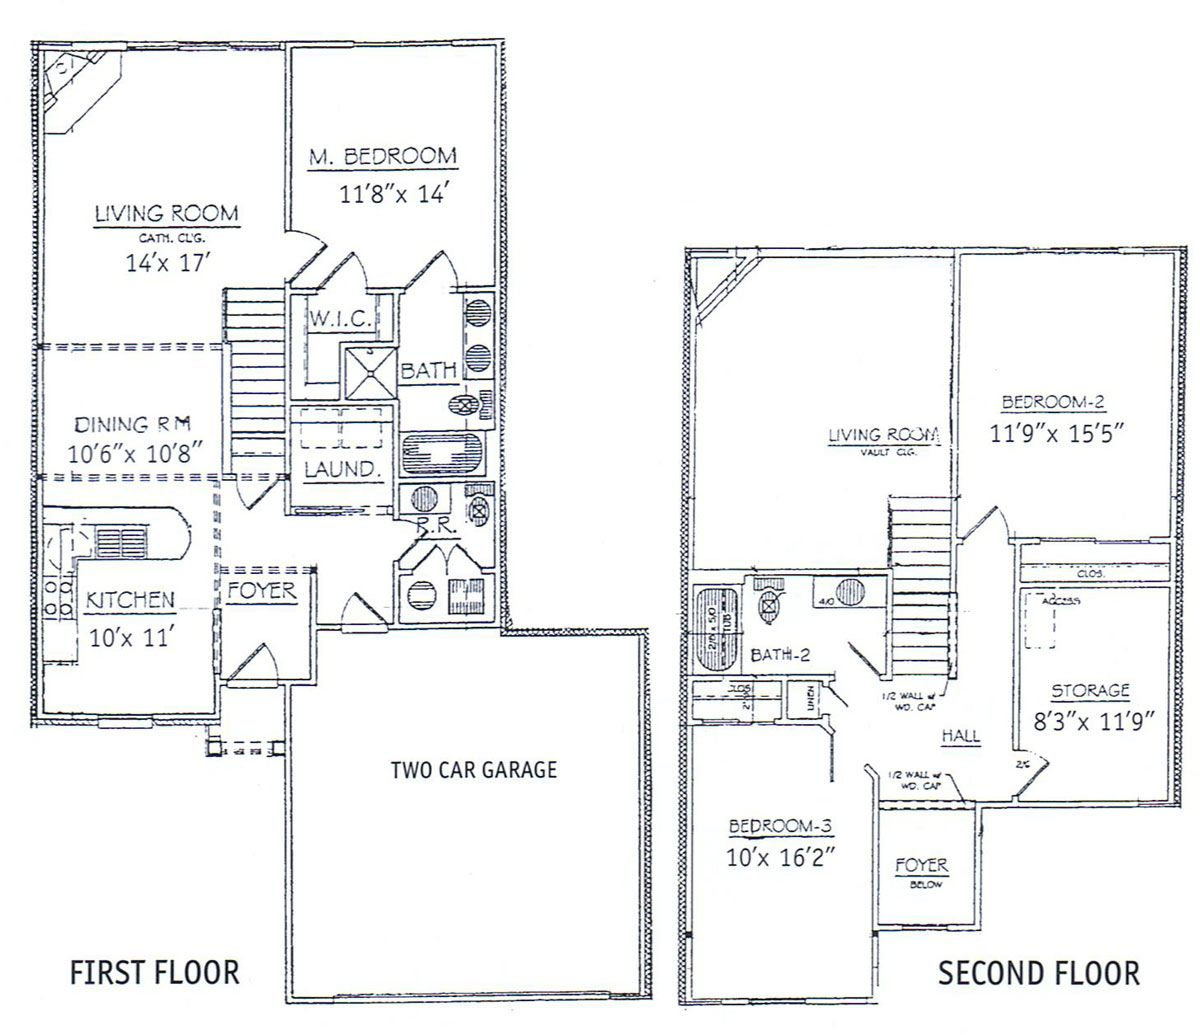 lovely two story condo floor plans #5: 3 bedrooms floor plans 2 story | ... bdrm basement the two three bedroom